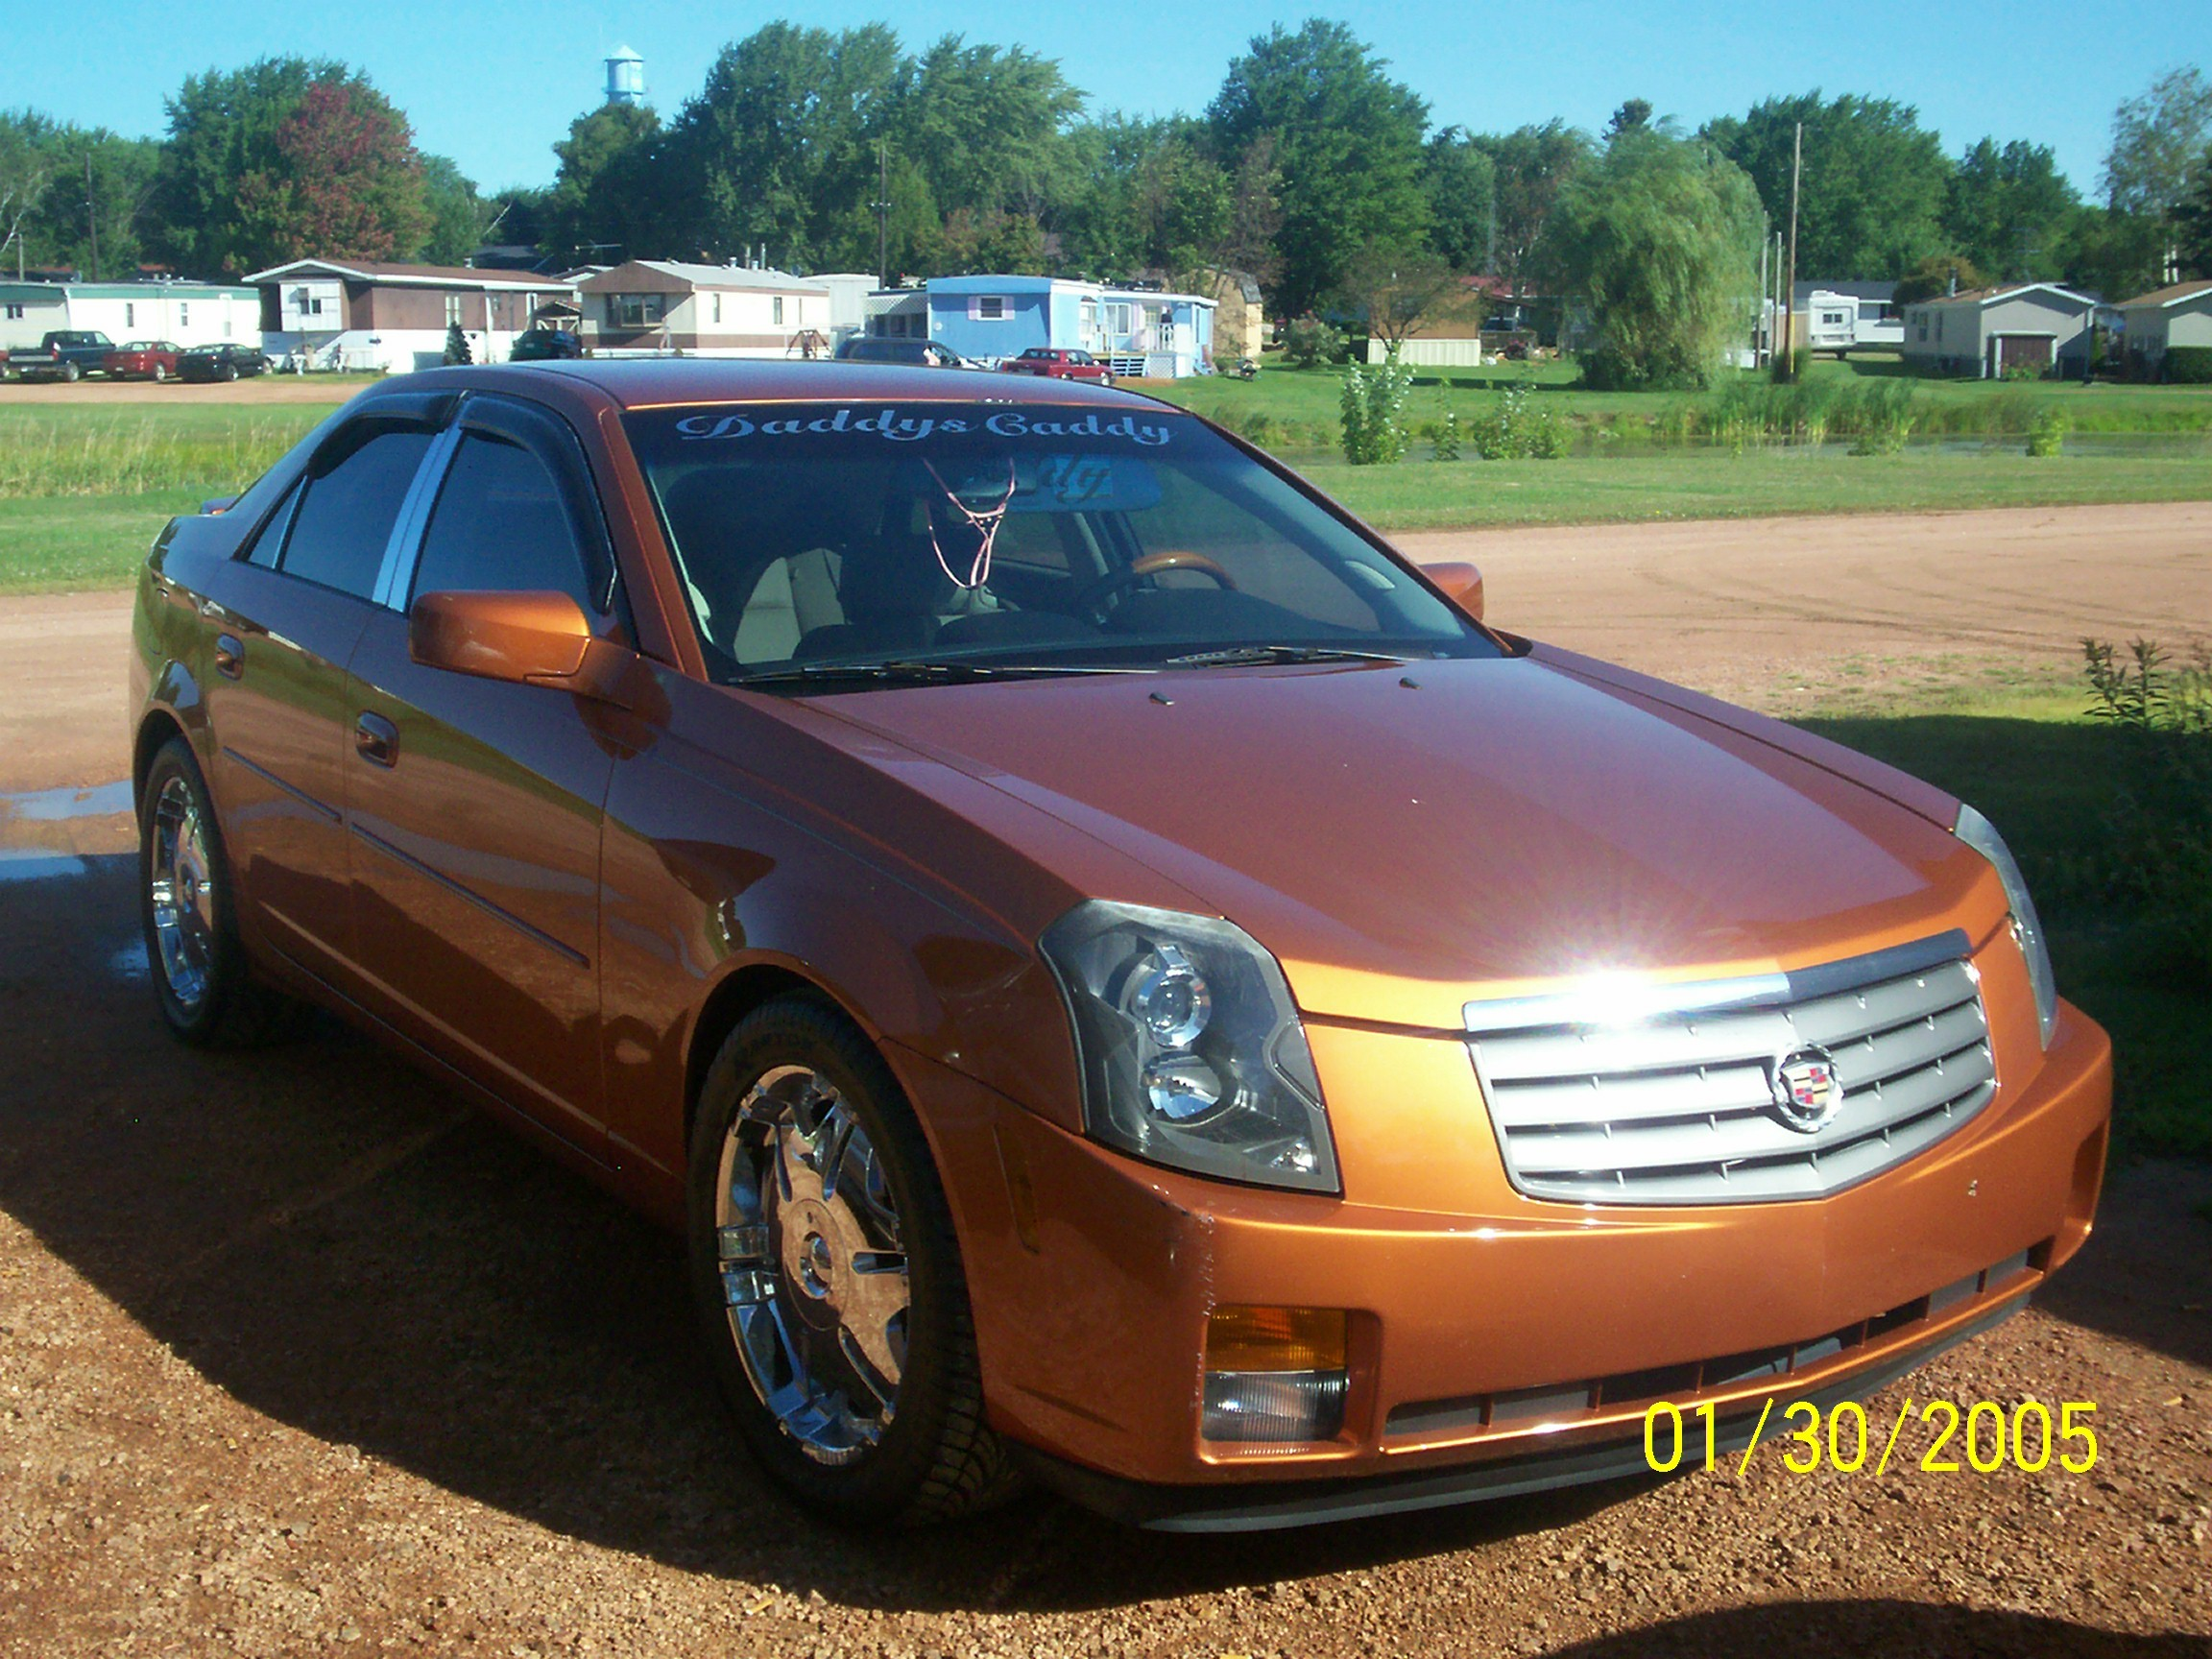 c23m20kkk 2003 cadillac cts specs photos modification. Black Bedroom Furniture Sets. Home Design Ideas